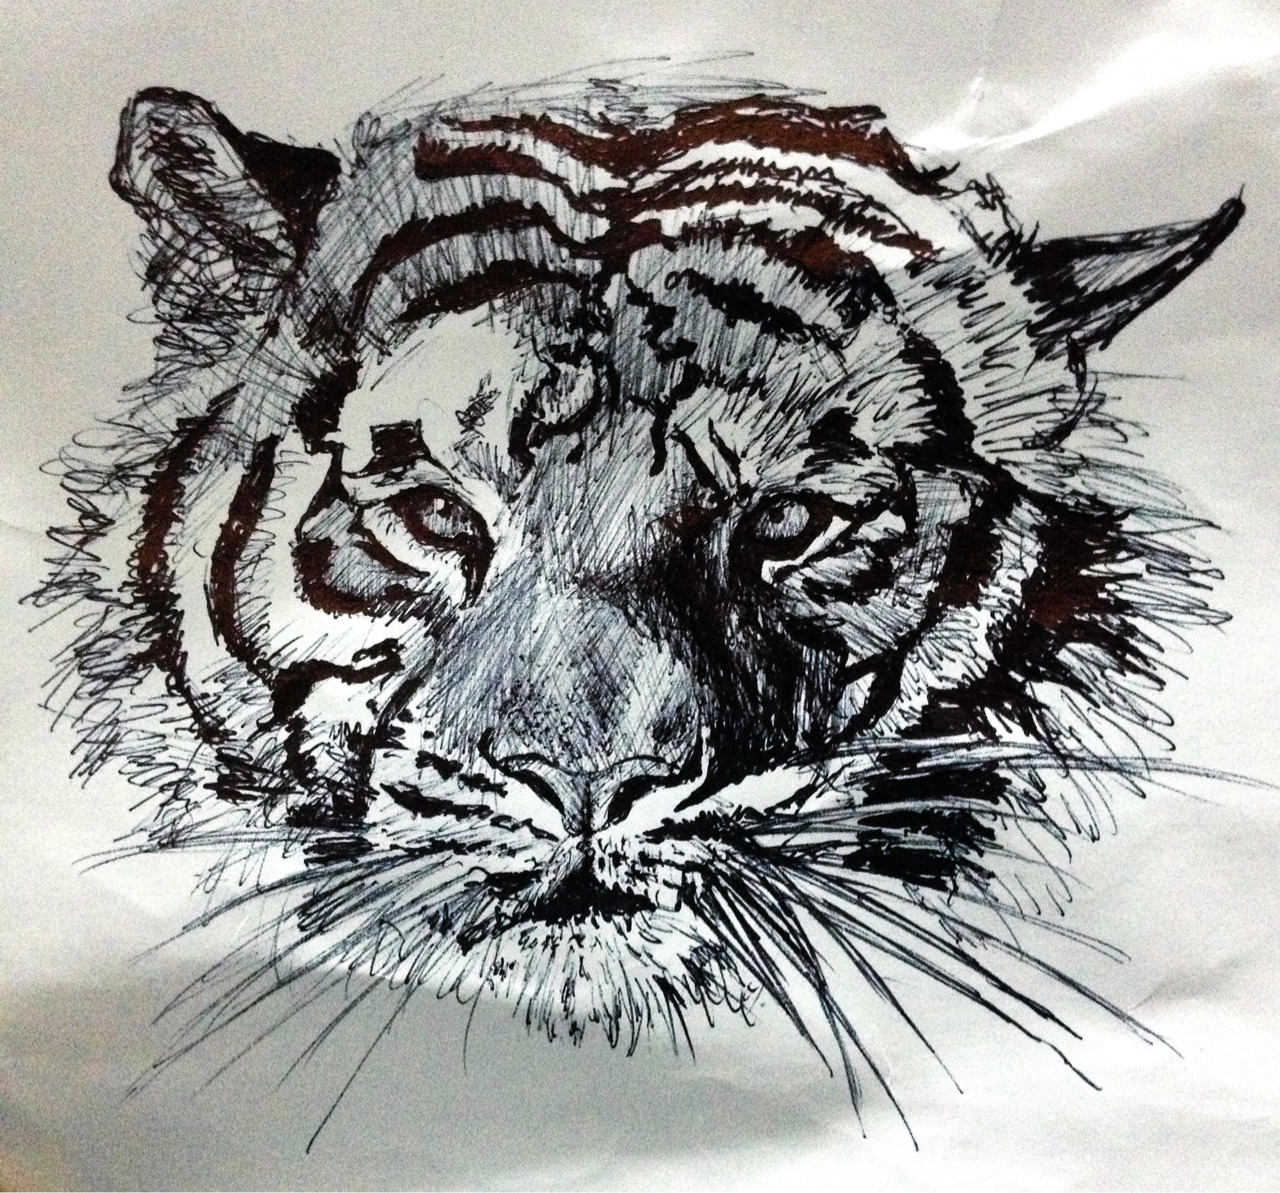 rizwansartgallery:  A quick sketch I did using a biro pen